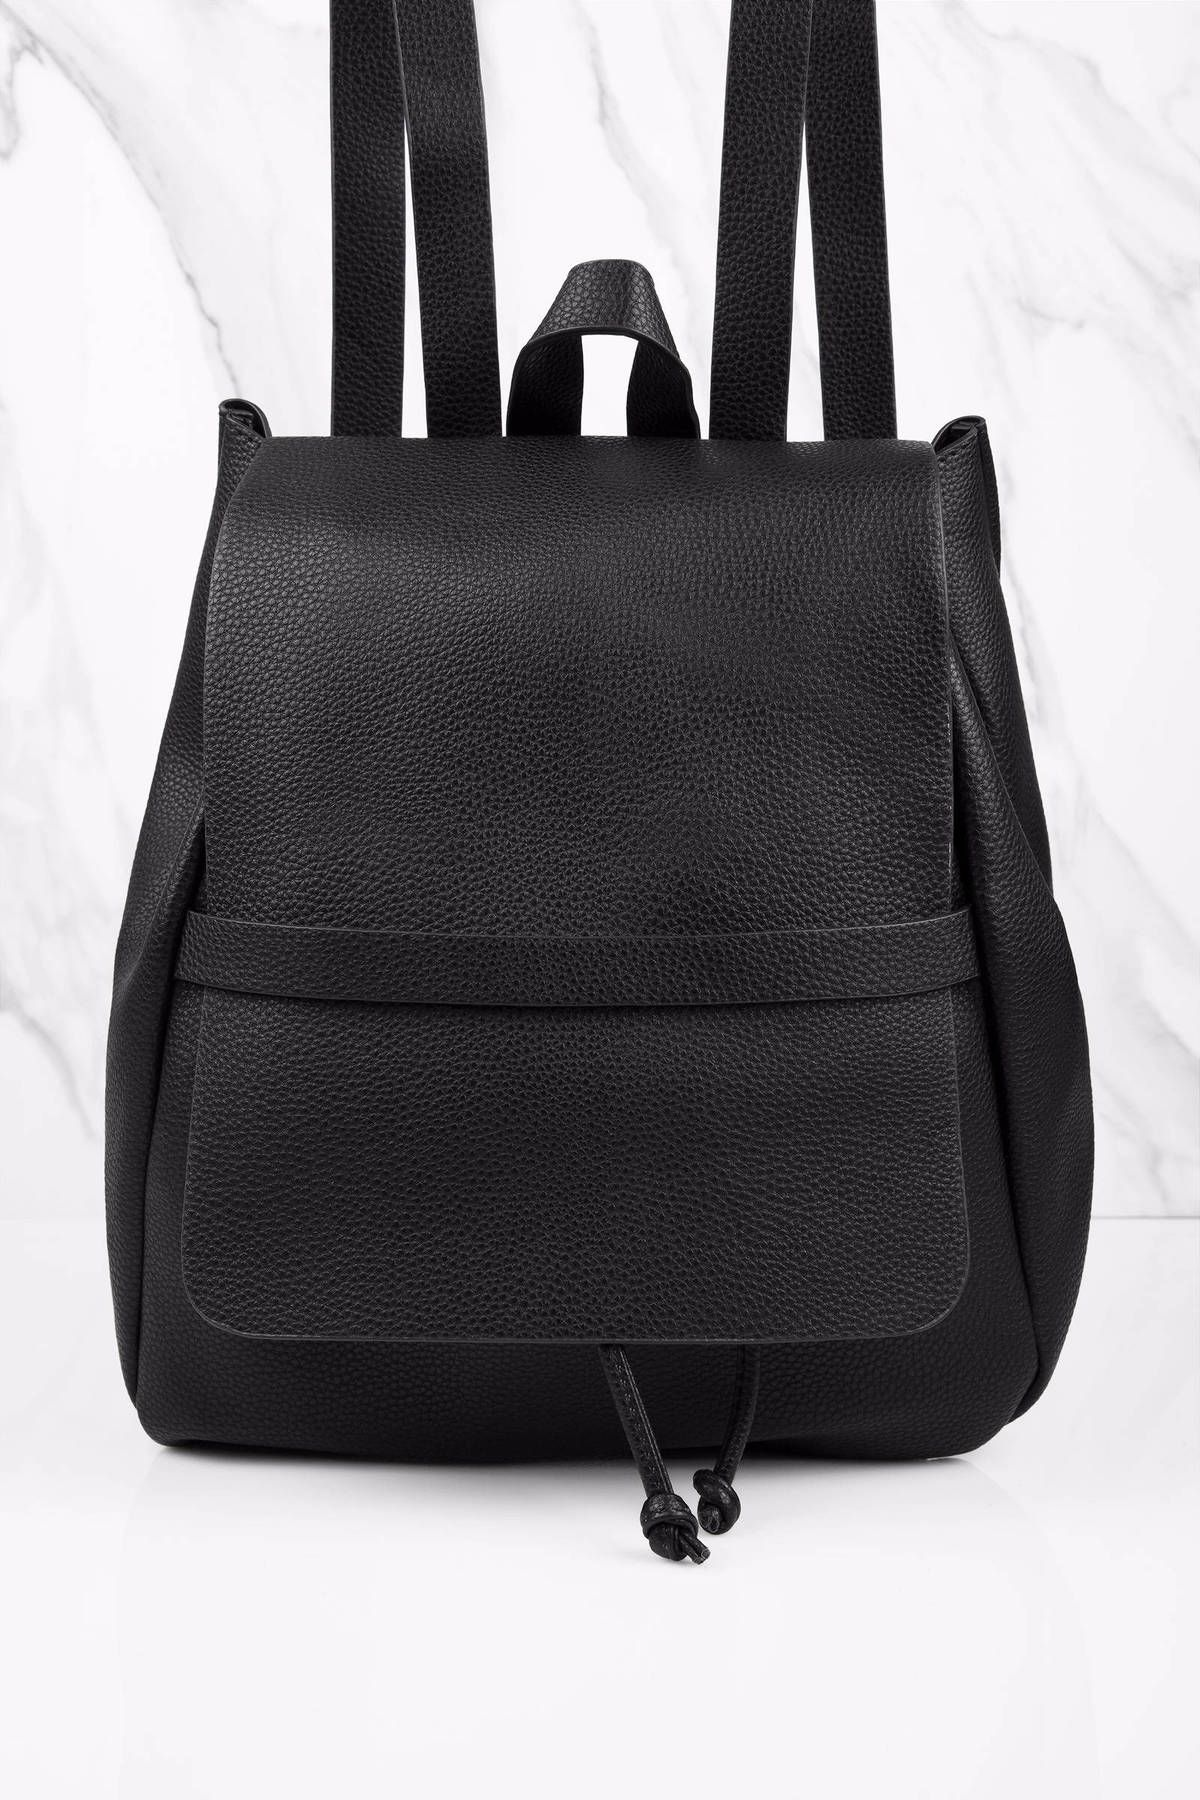 af6202d4f Keep your belongings in the Trust Nobody Faux Leather Backpack. Cutest  addition to any outfit! - Fast & Free Shipping For Orders over $50 - Free  Returns ...